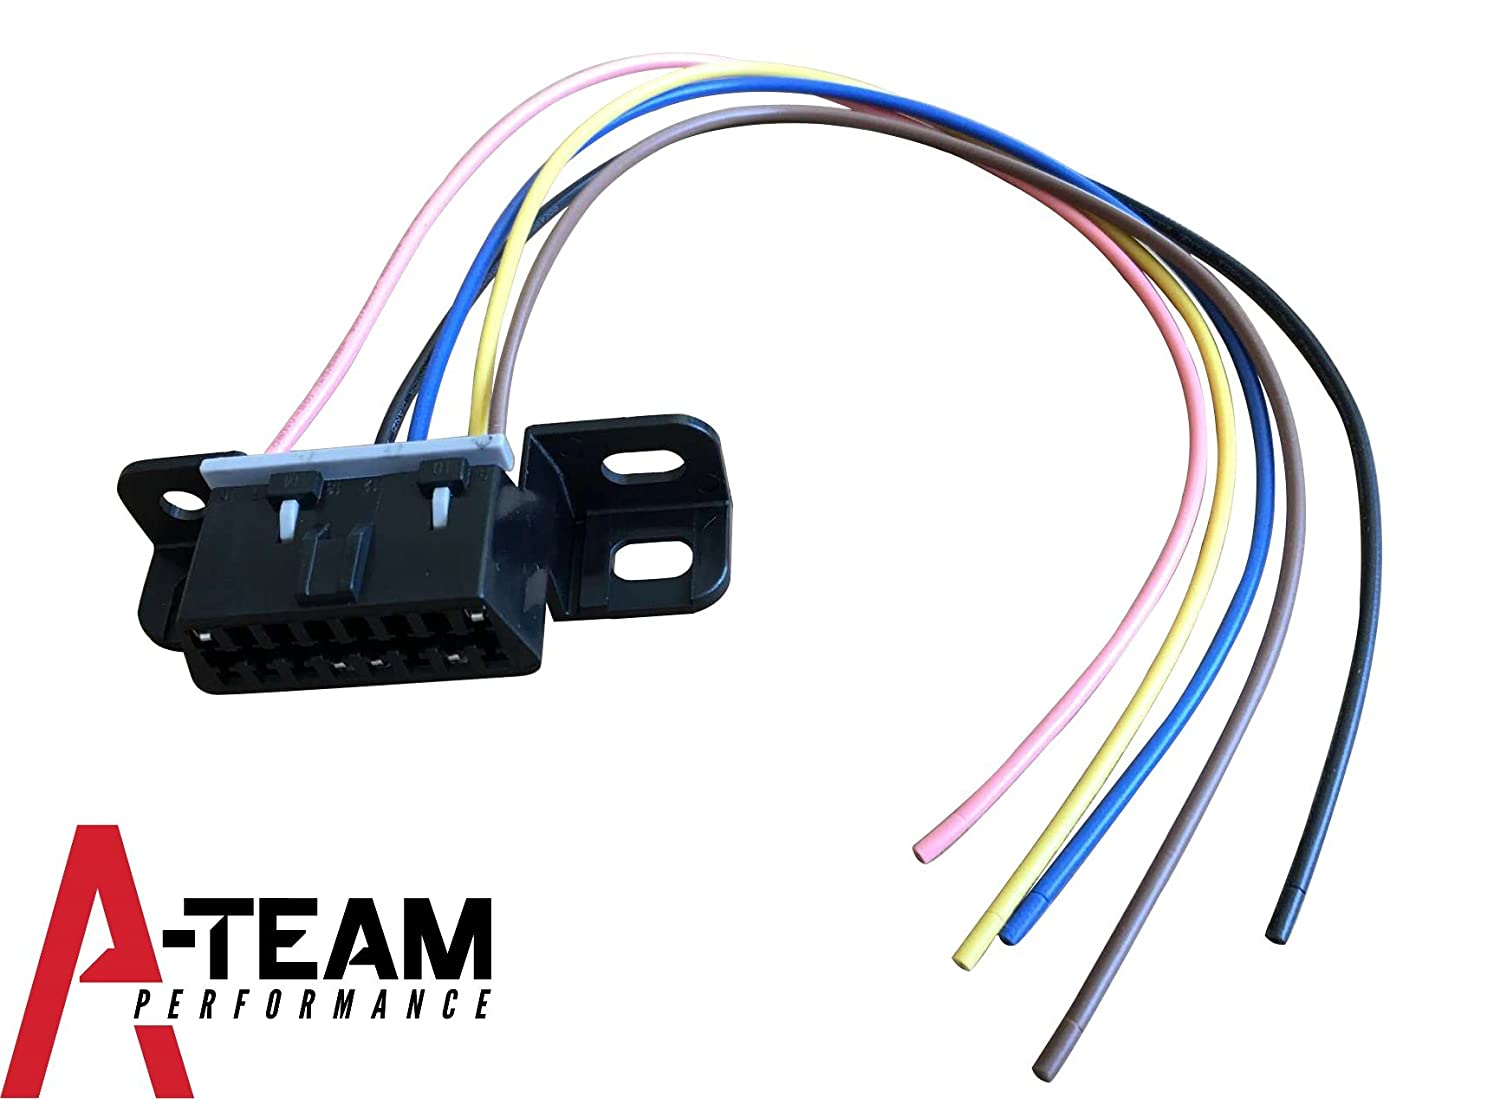 Amazon.com: A-Team Performance OBD II, OBD2 DASH PORT WIRE PIGTAIL CONNECTOR  PLUG IN CHEVY/GMC LS, LSX, LS1, LS2, LS3, LS6, LS7, L92, LQ4, LM7 4.8L 5.3L  ...